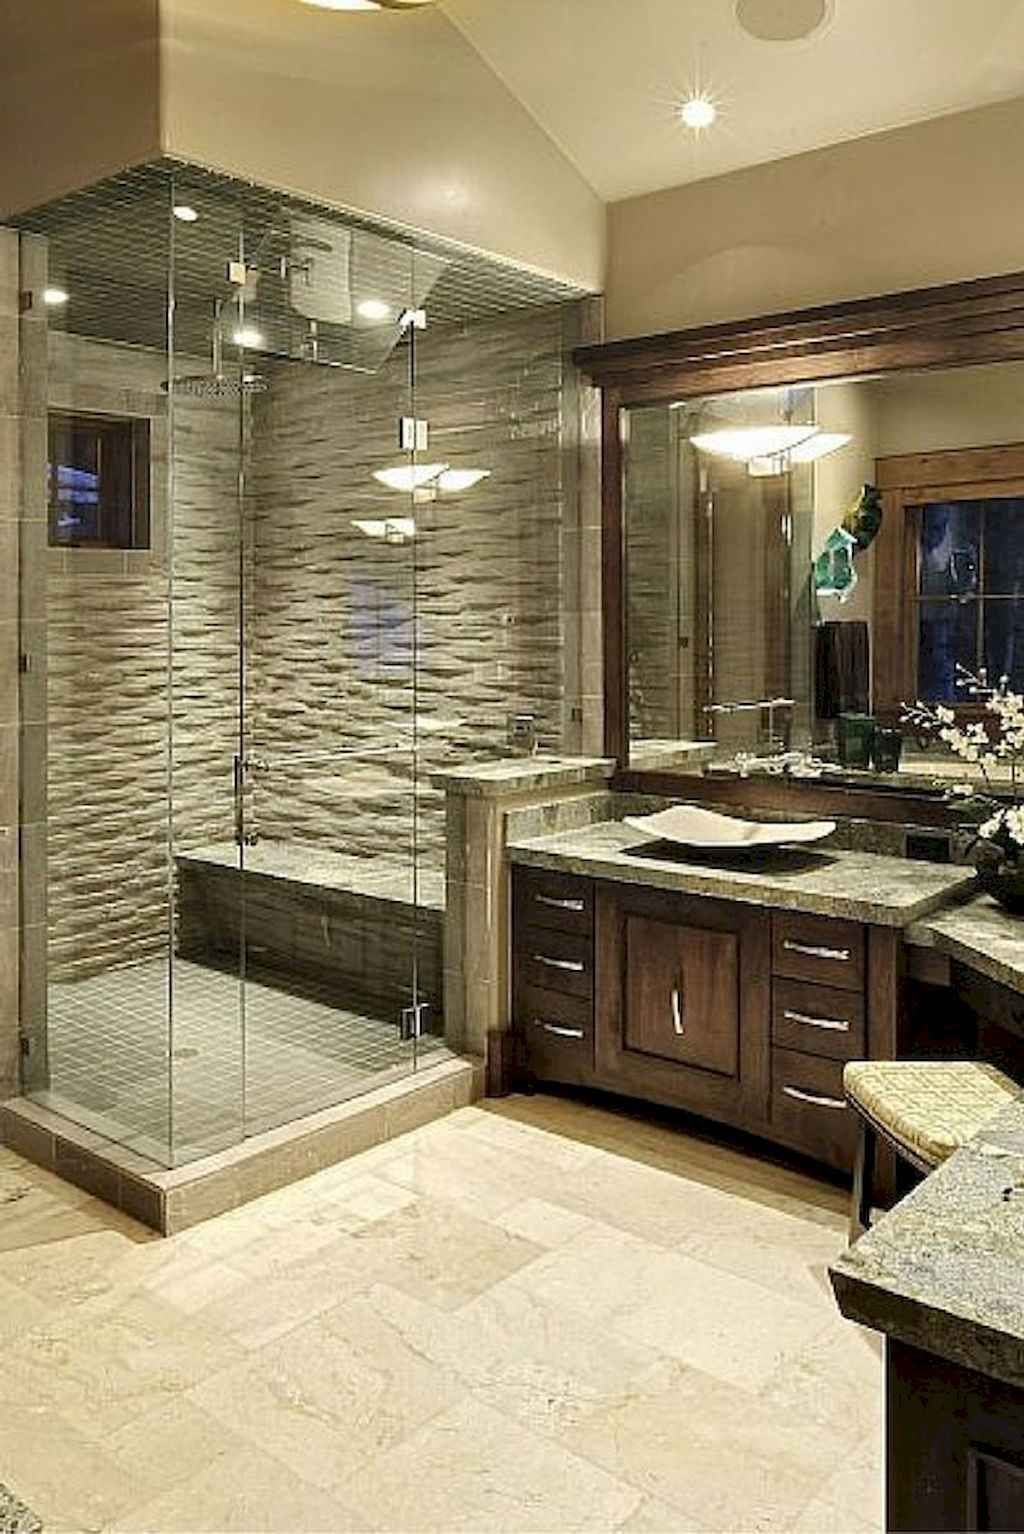 Rustic Farmhouse Bathroom Remodel Ideas Bathroom Remodel Master Master Bath Layout Master Bathroom Design